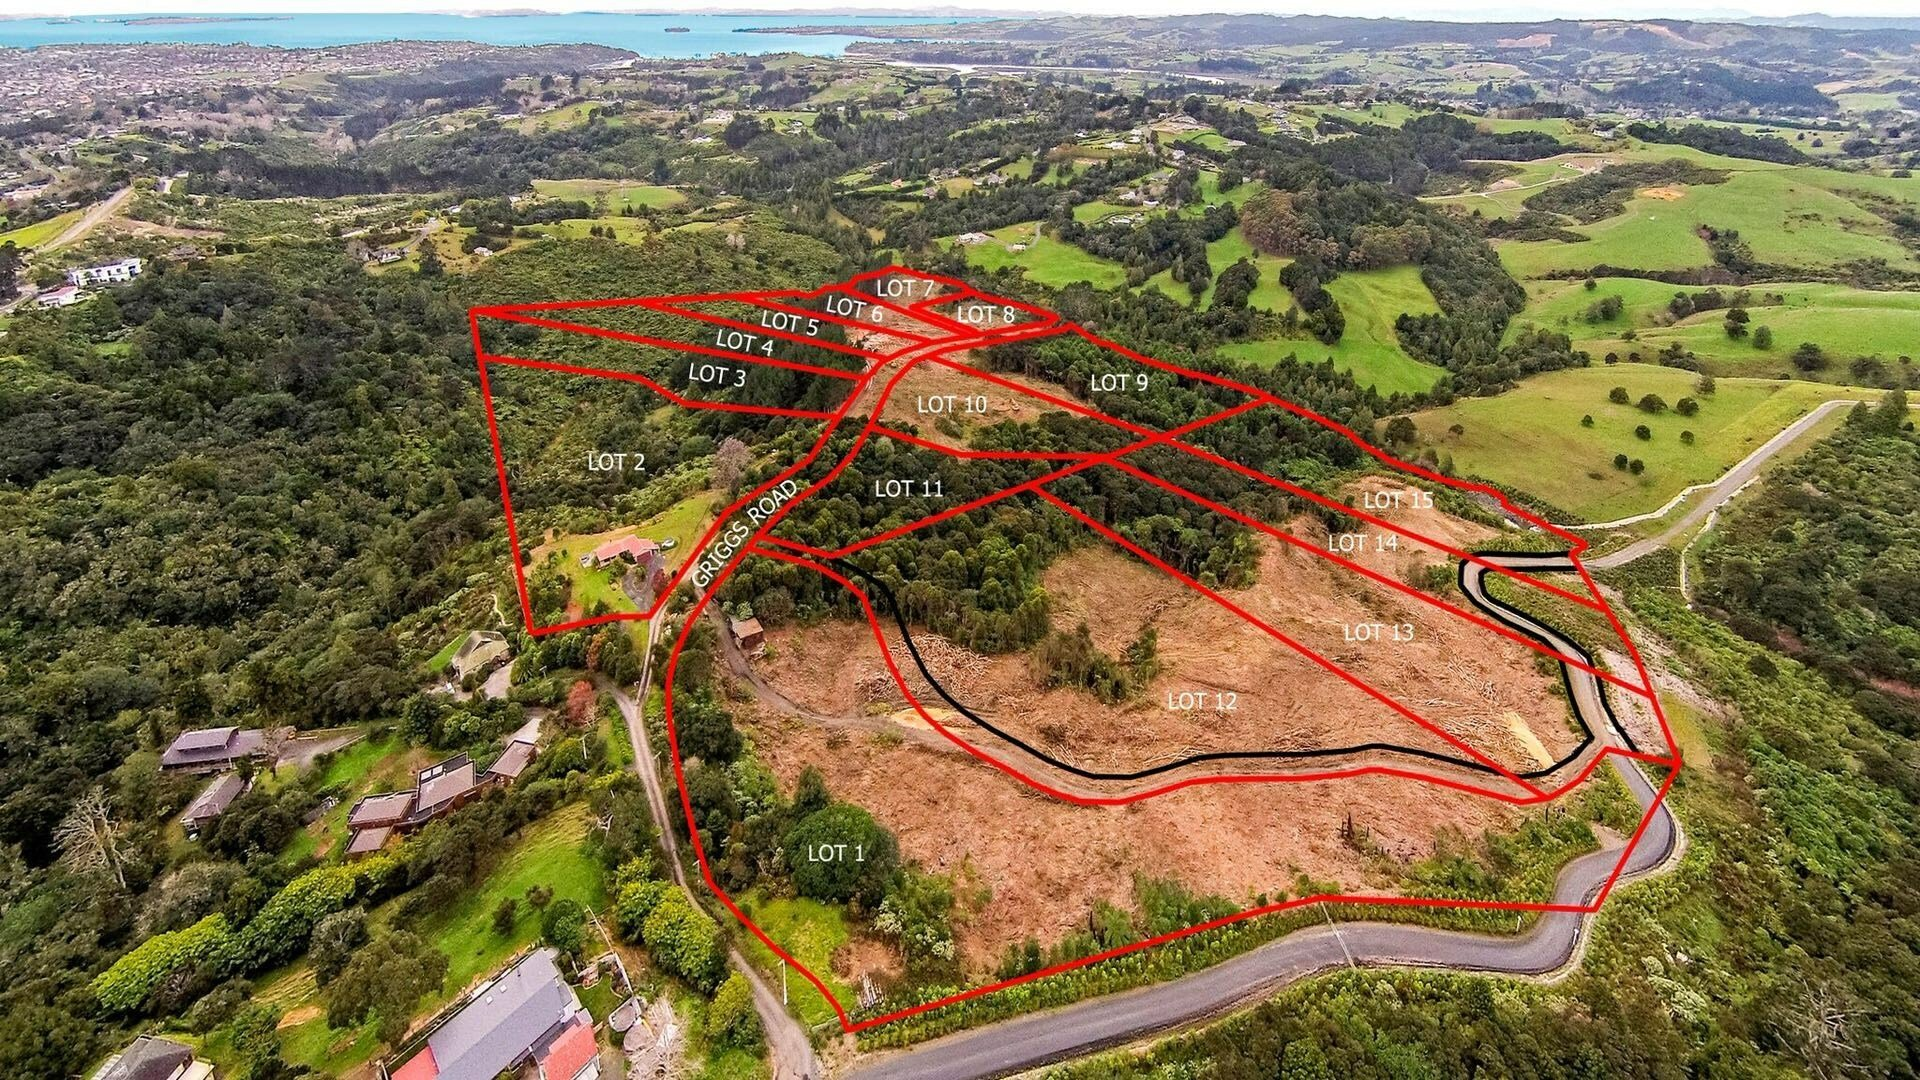 Land in Auckland, Auckland, New Zealand 1